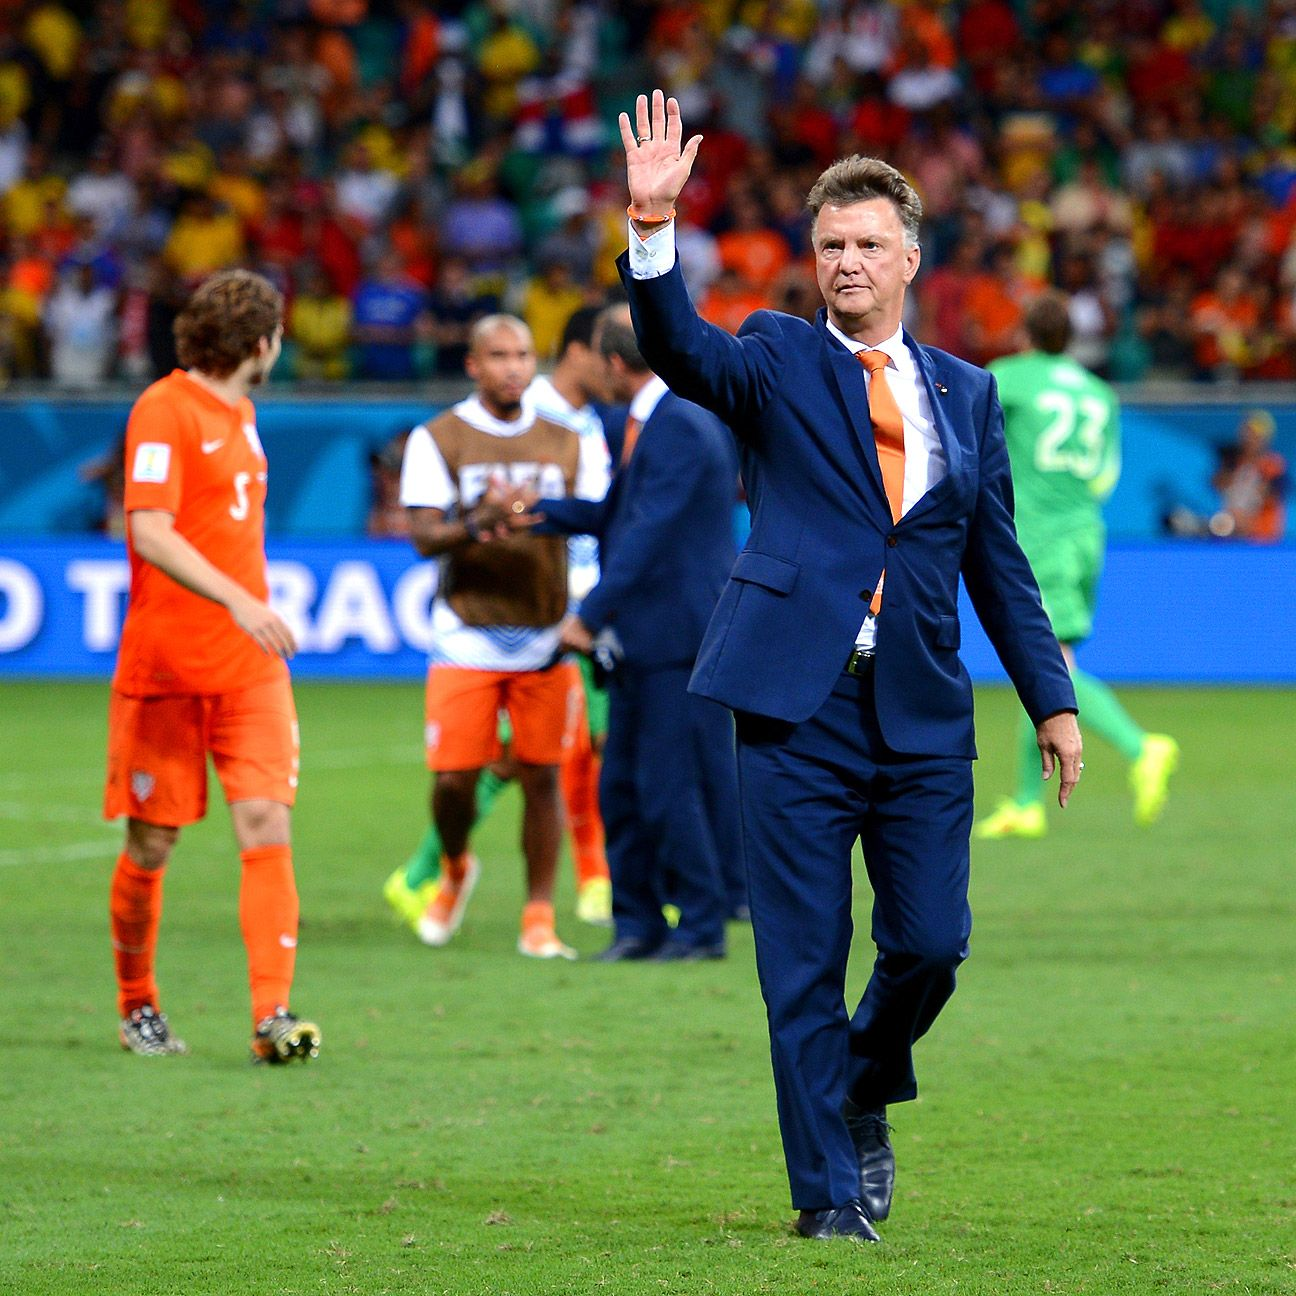 Louis van Gaal's trickery worked against Costa Rica. What will he scheme in order to stop Lionel Messi and Argentina?